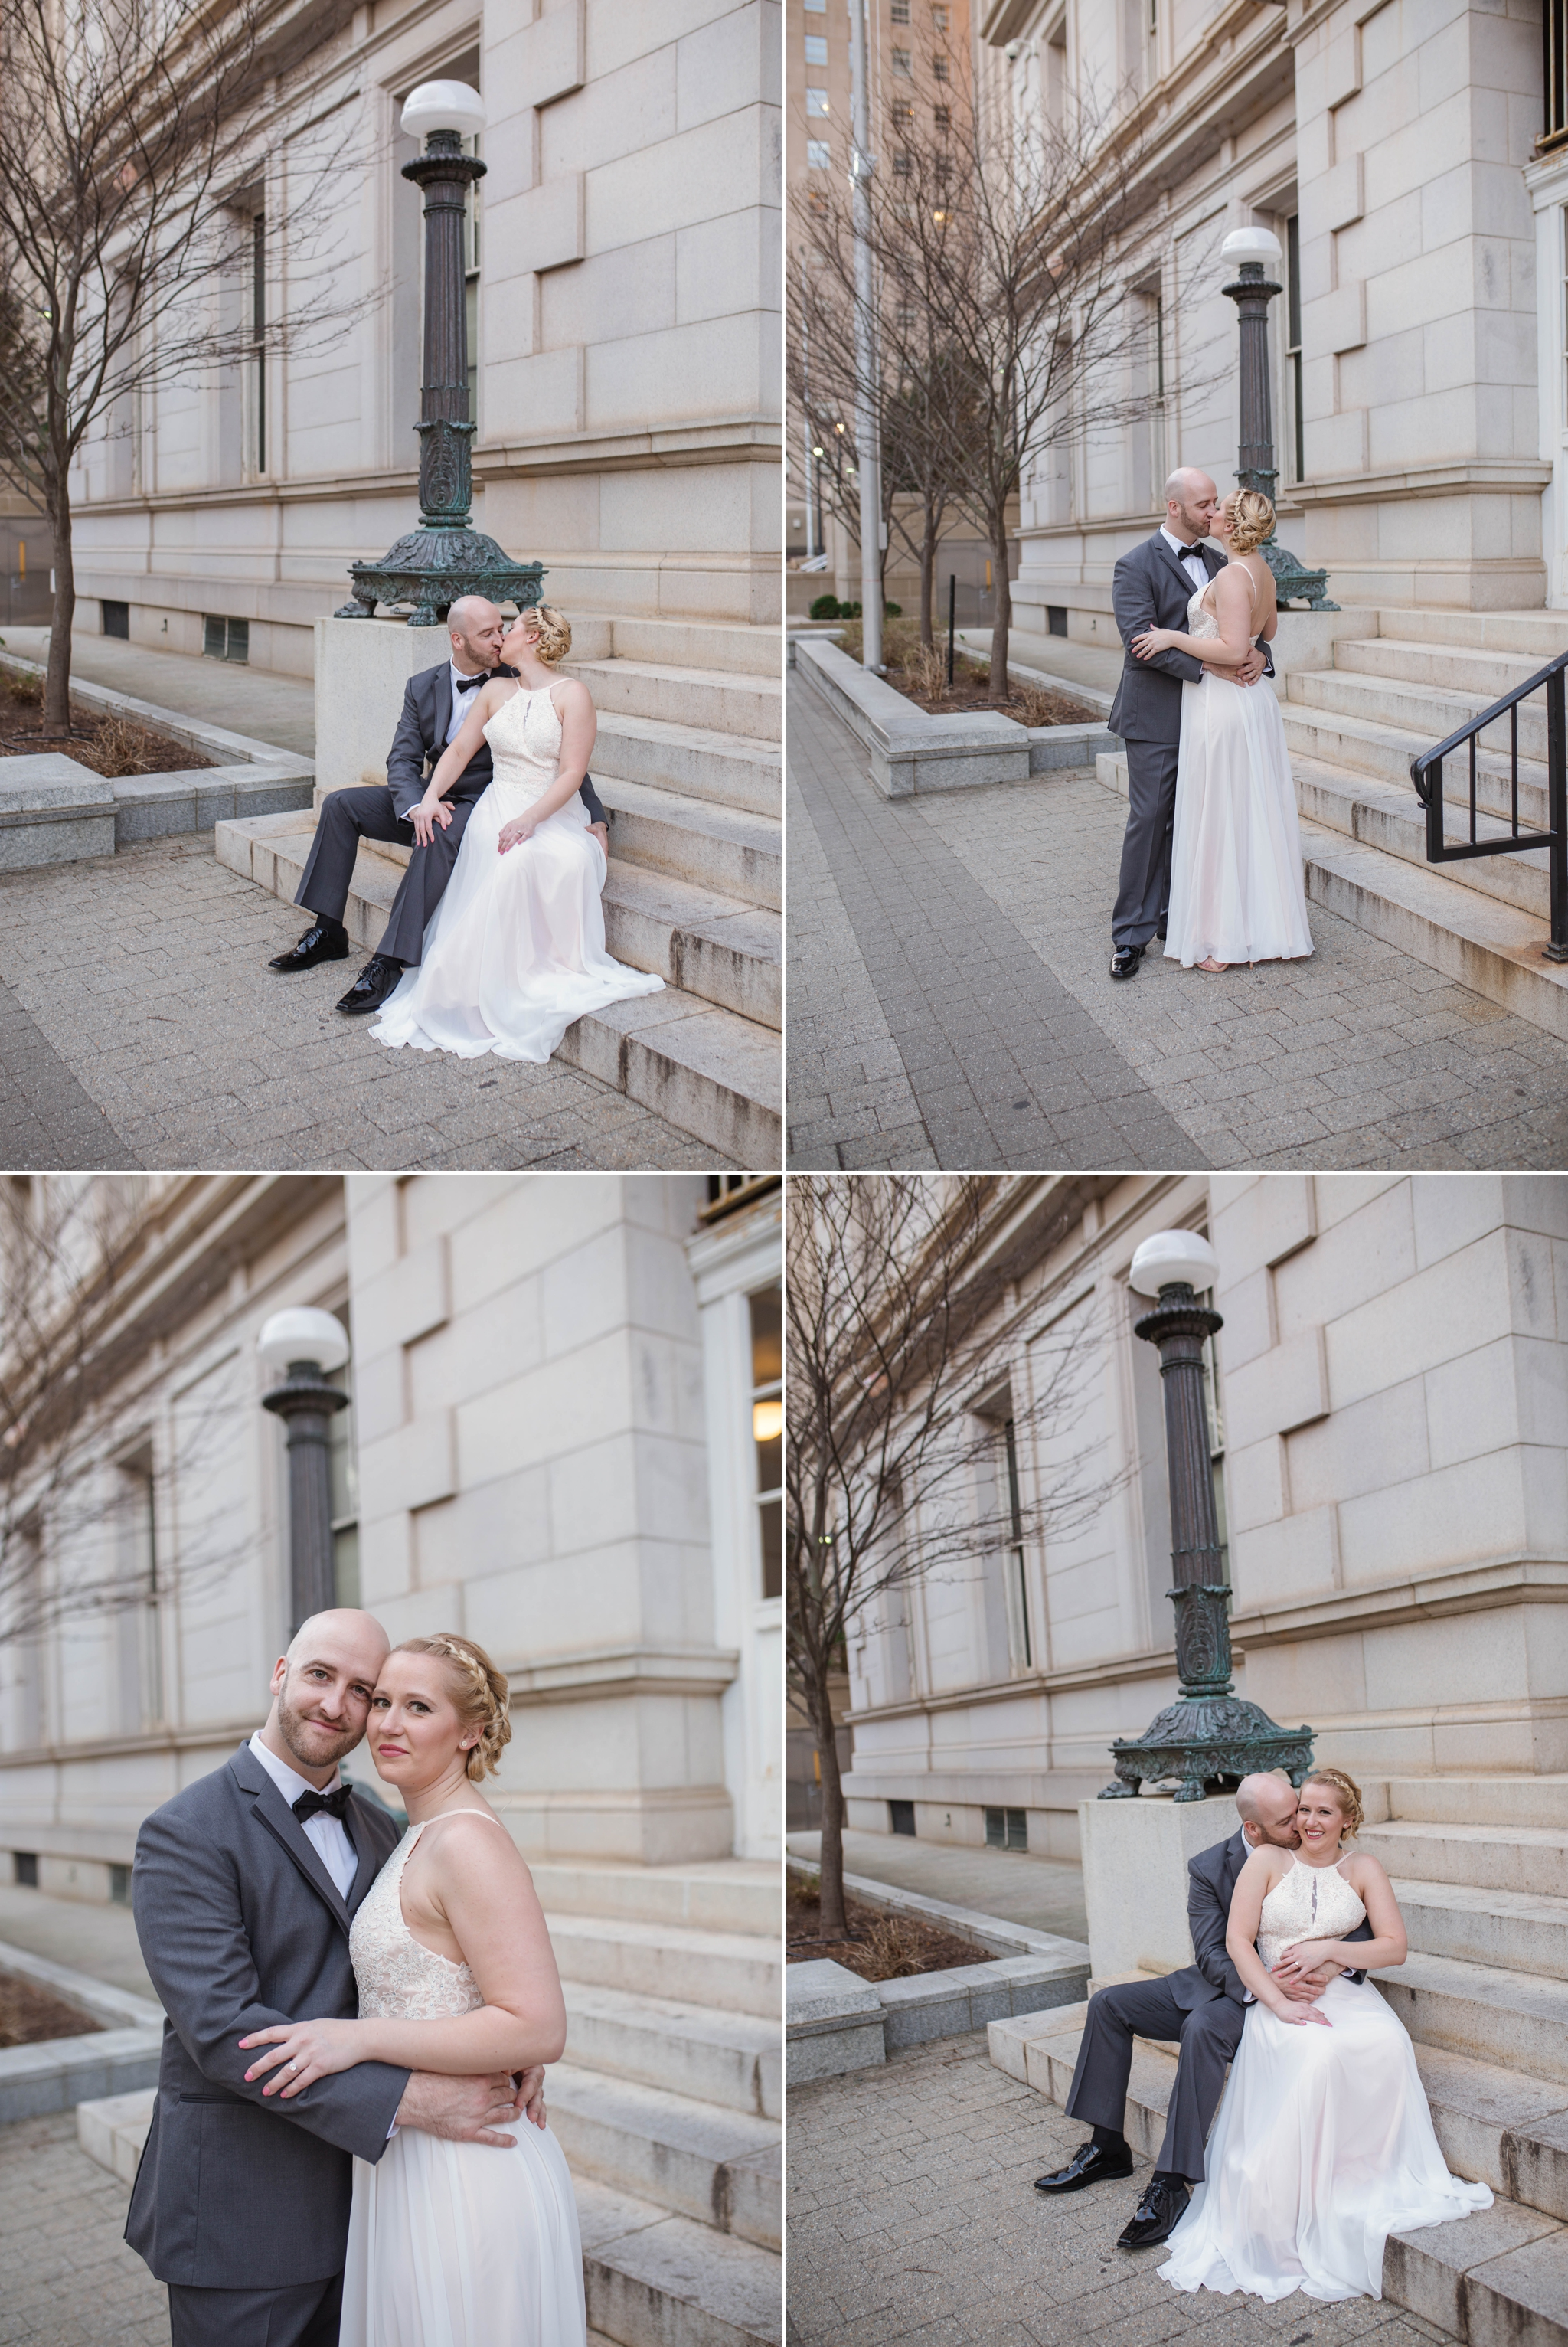 Downtown Raleigh Engagement Photography Session - North Carolina Wedding Photographer